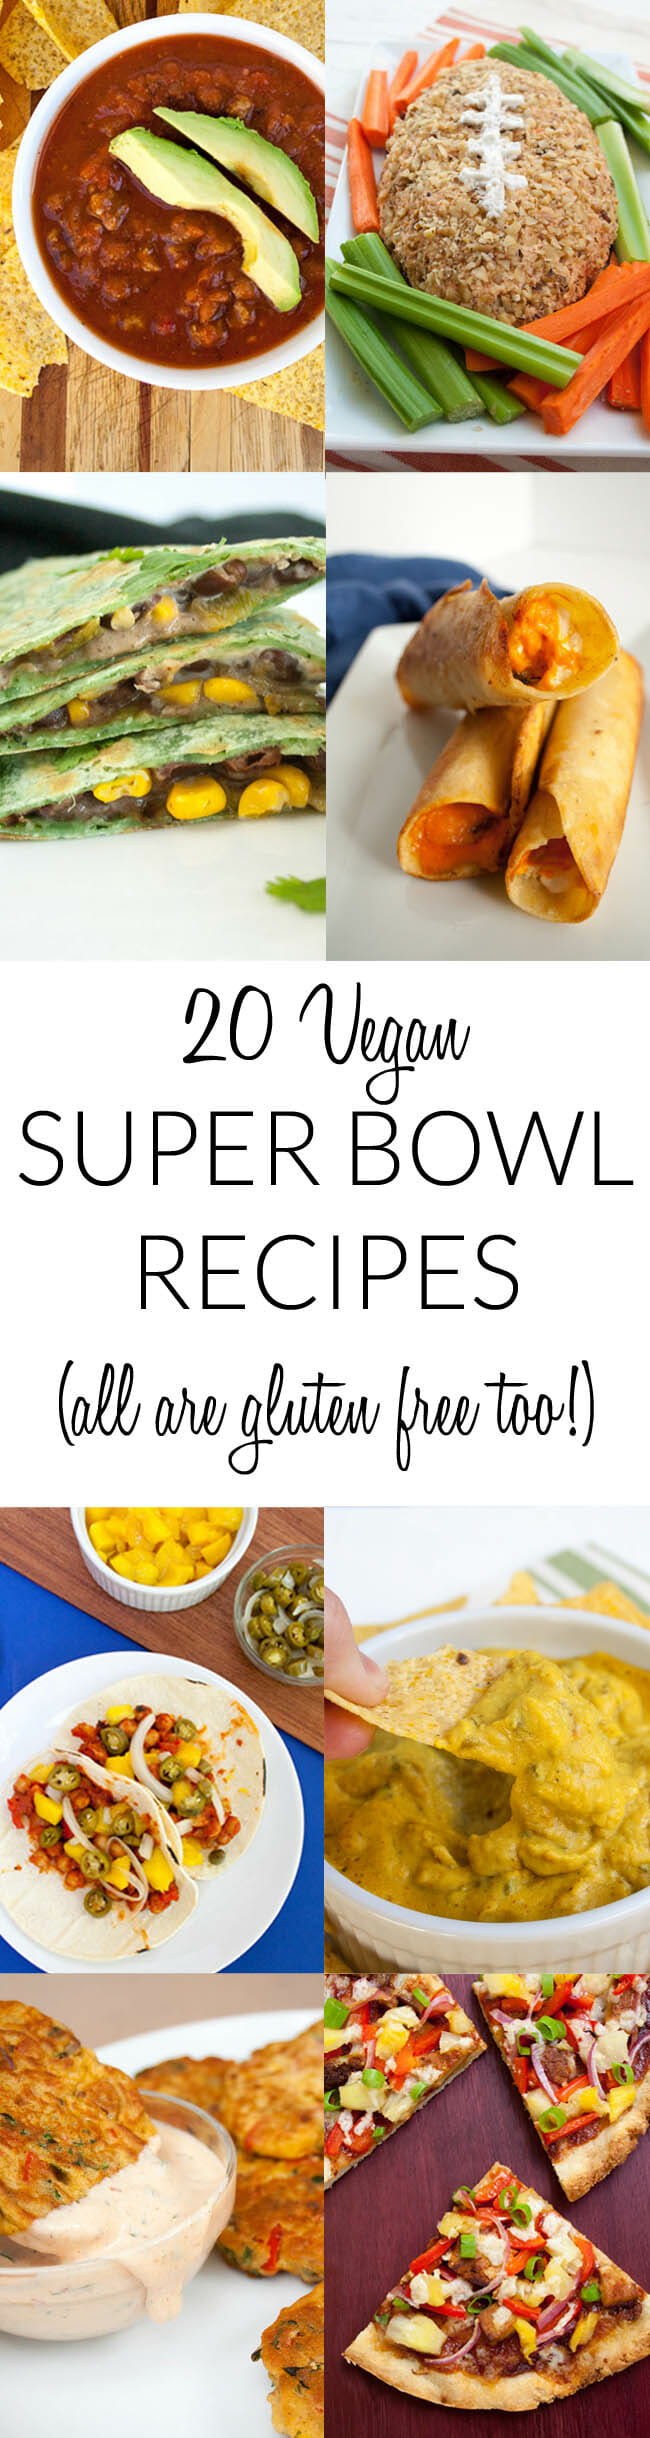 20 Vegan Super Bowl Recipes collage photo with text in the middle.